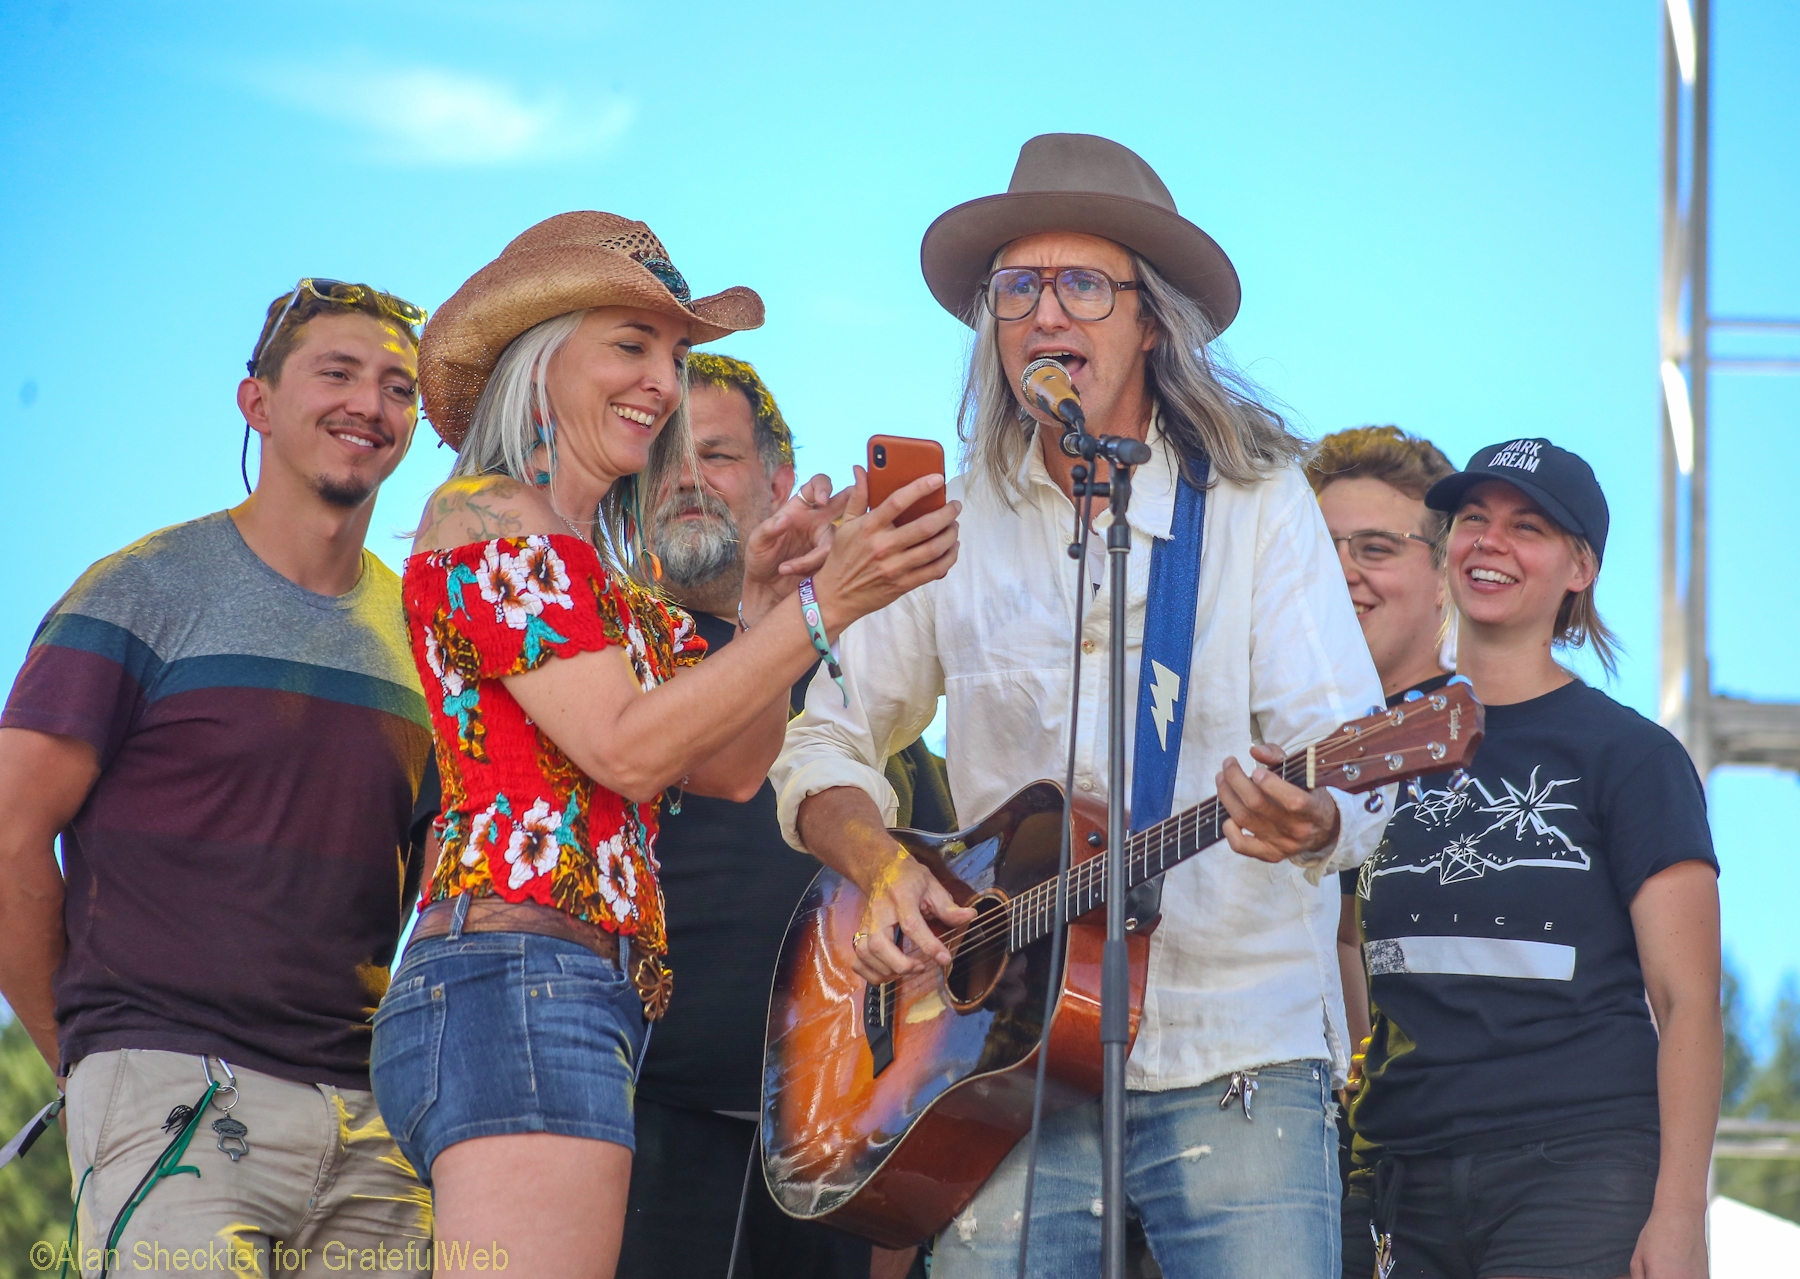 Steve Poltz, Paige Clem and High Sierra crew in a sing-along